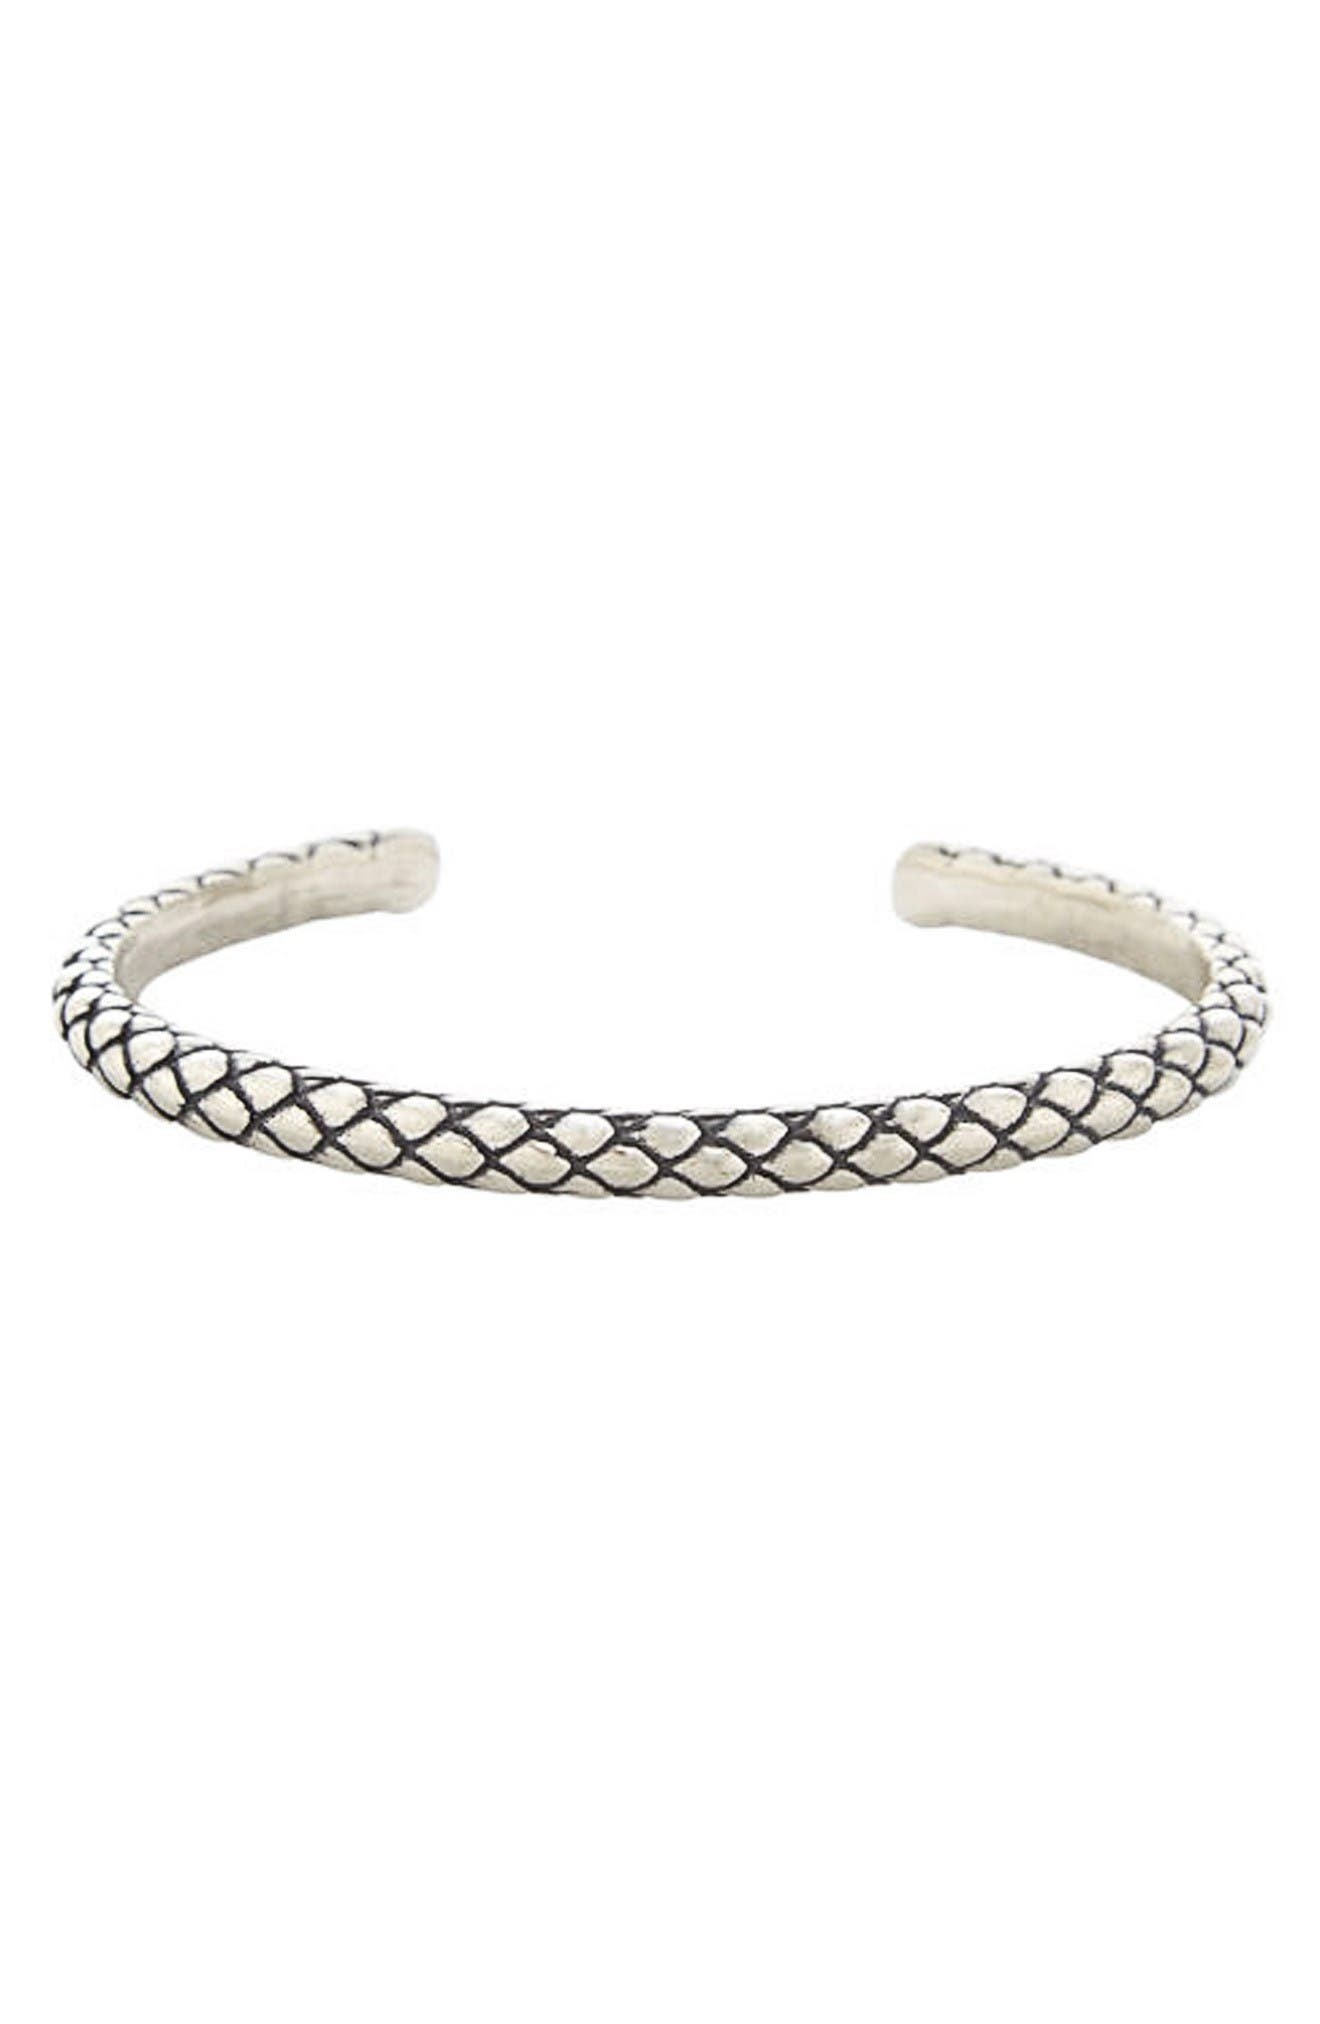 Stealth Cuff Bracelet,                         Main,                         color, Silver